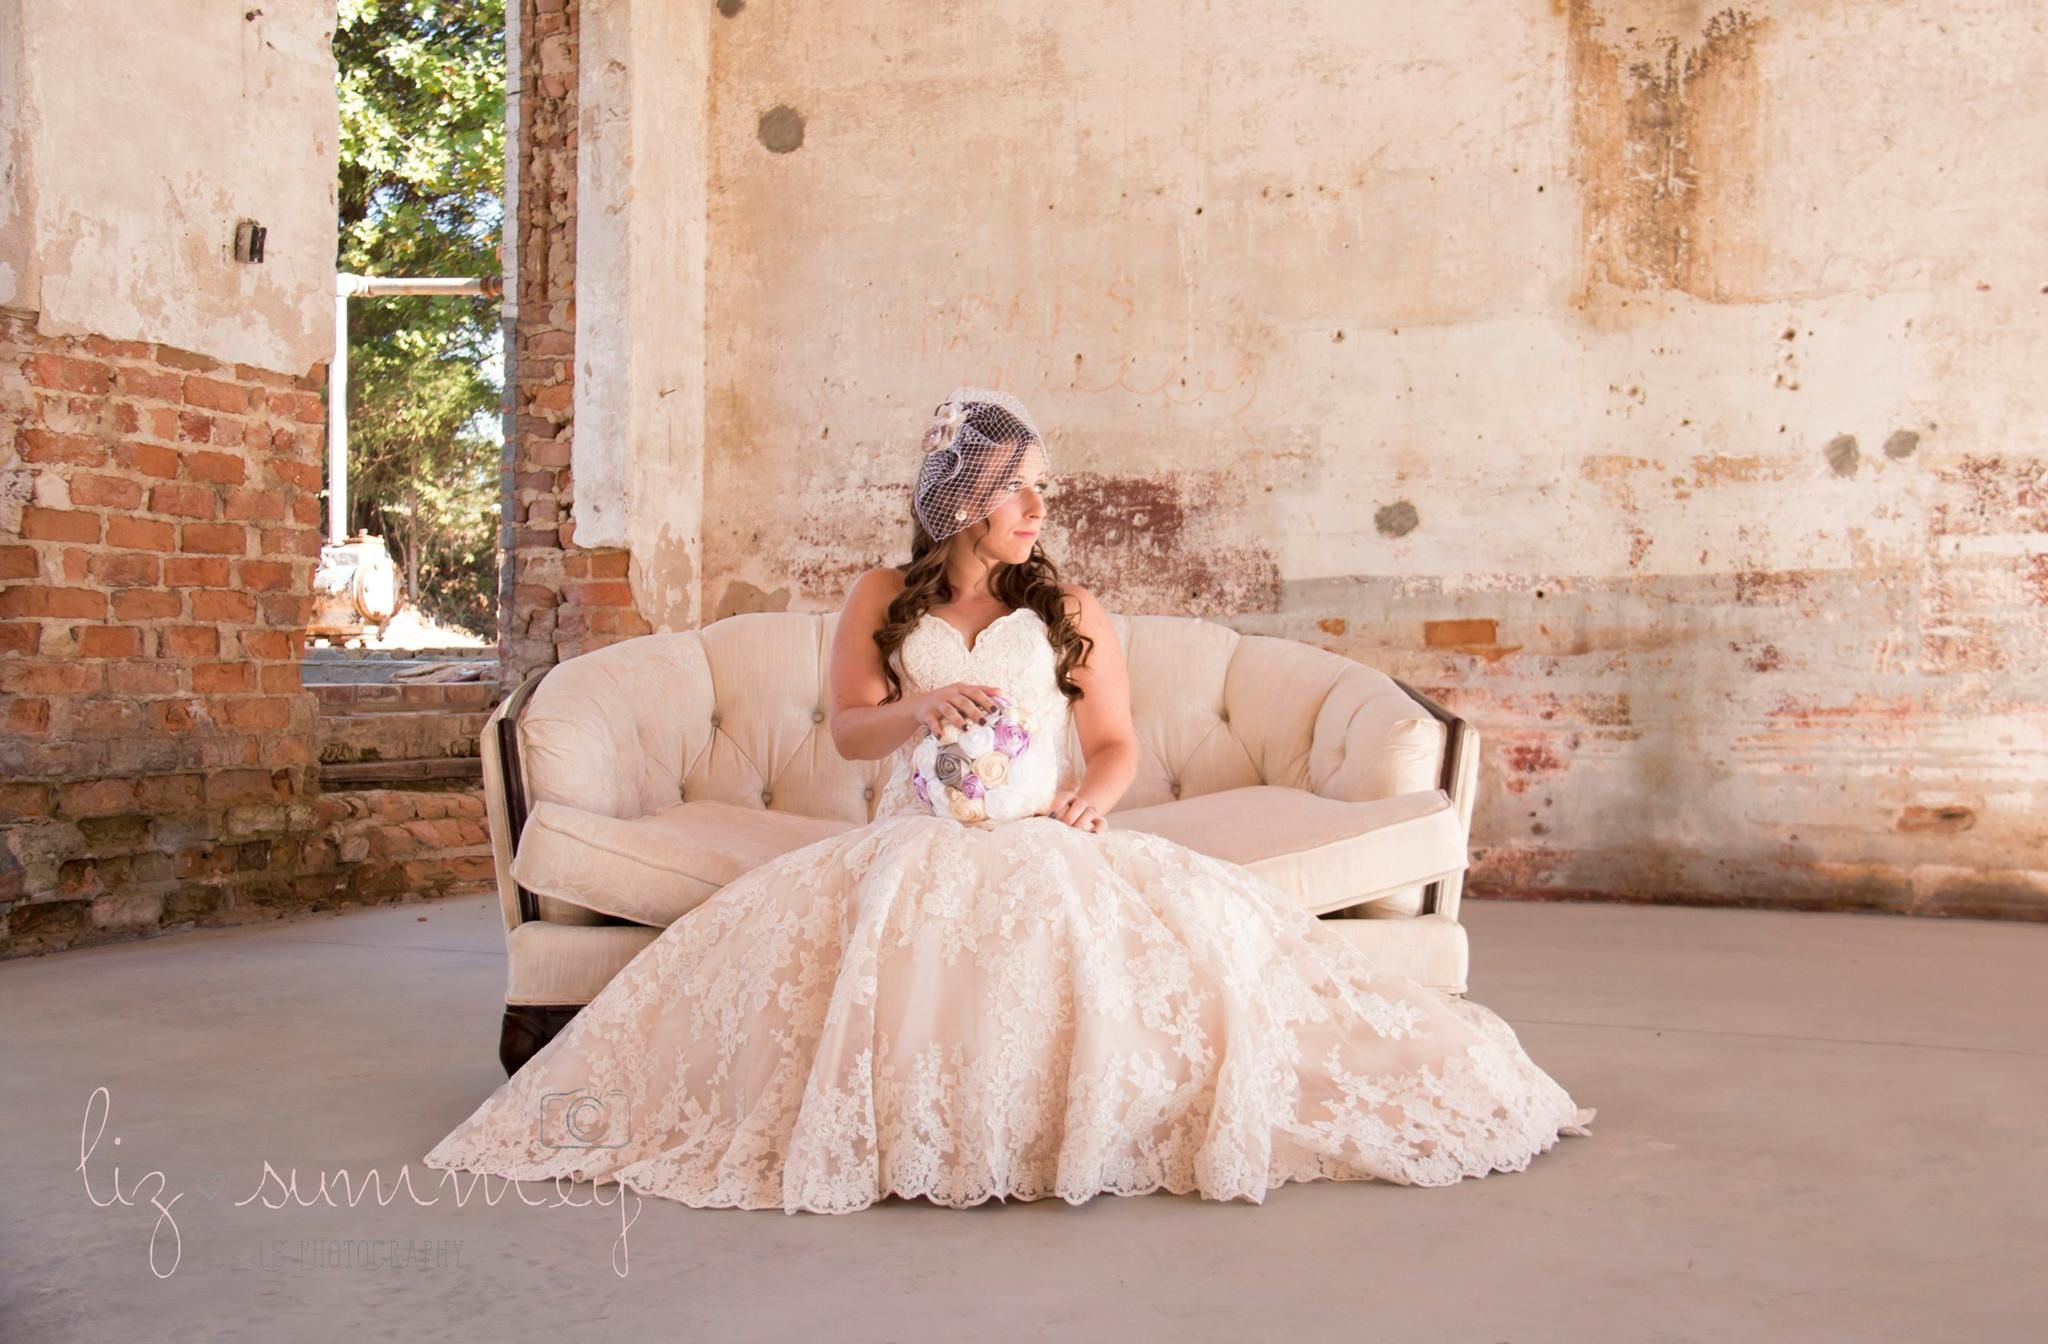 Cheap Wedding Dresses Des Moines Iowa: The Providence Cotton Mill Wedding Venue In Maiden, North